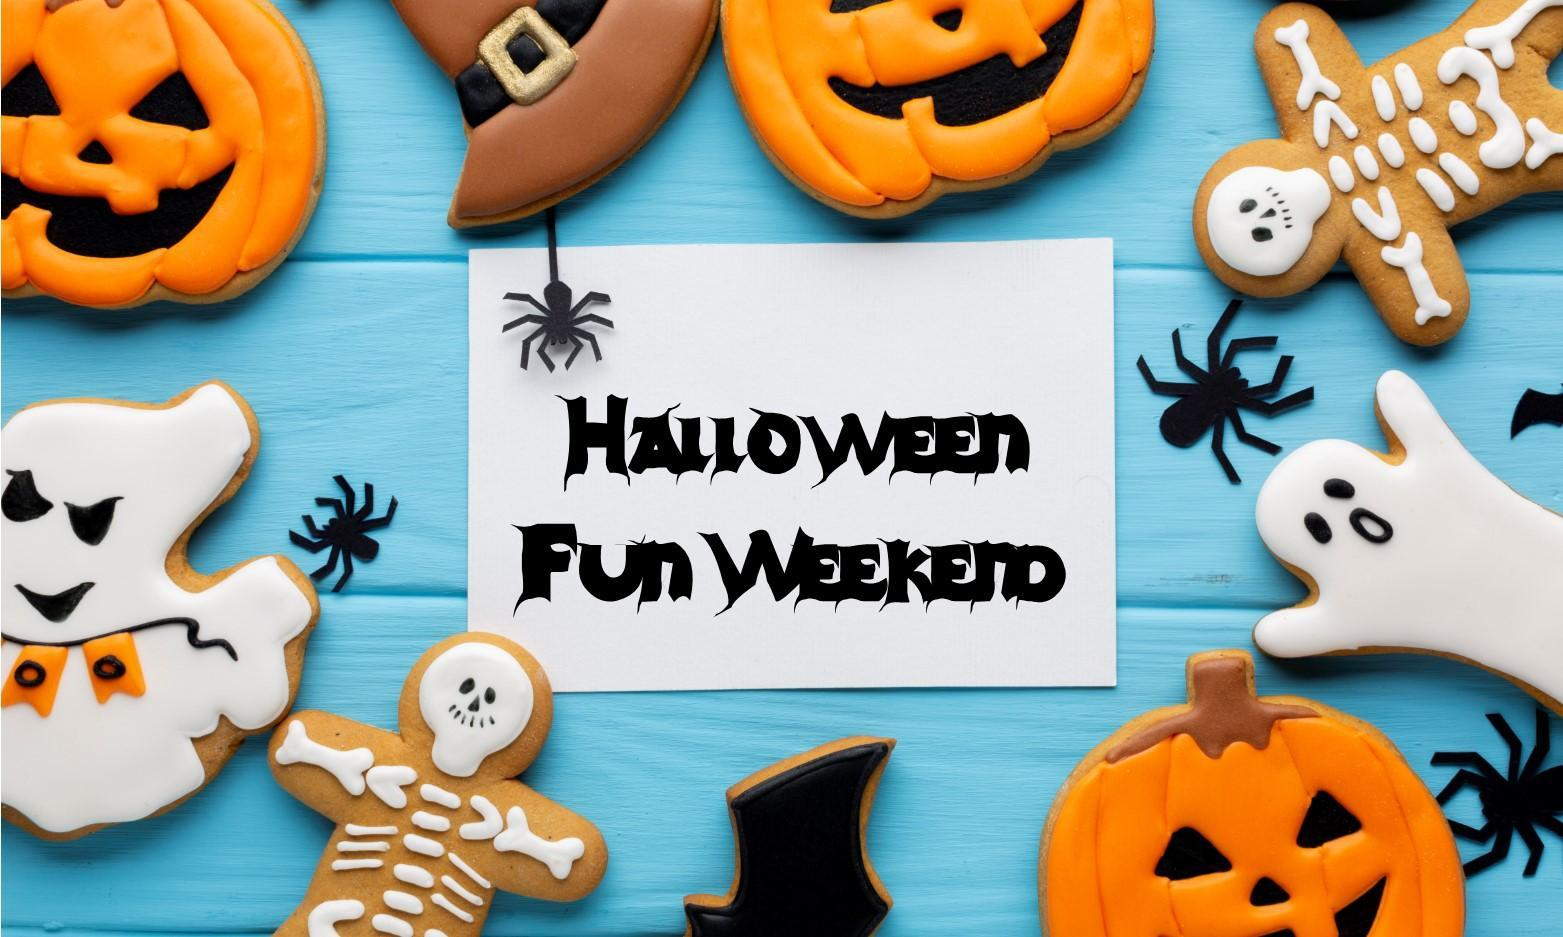 Clerkenhill Farm Halloween Fun Weekend